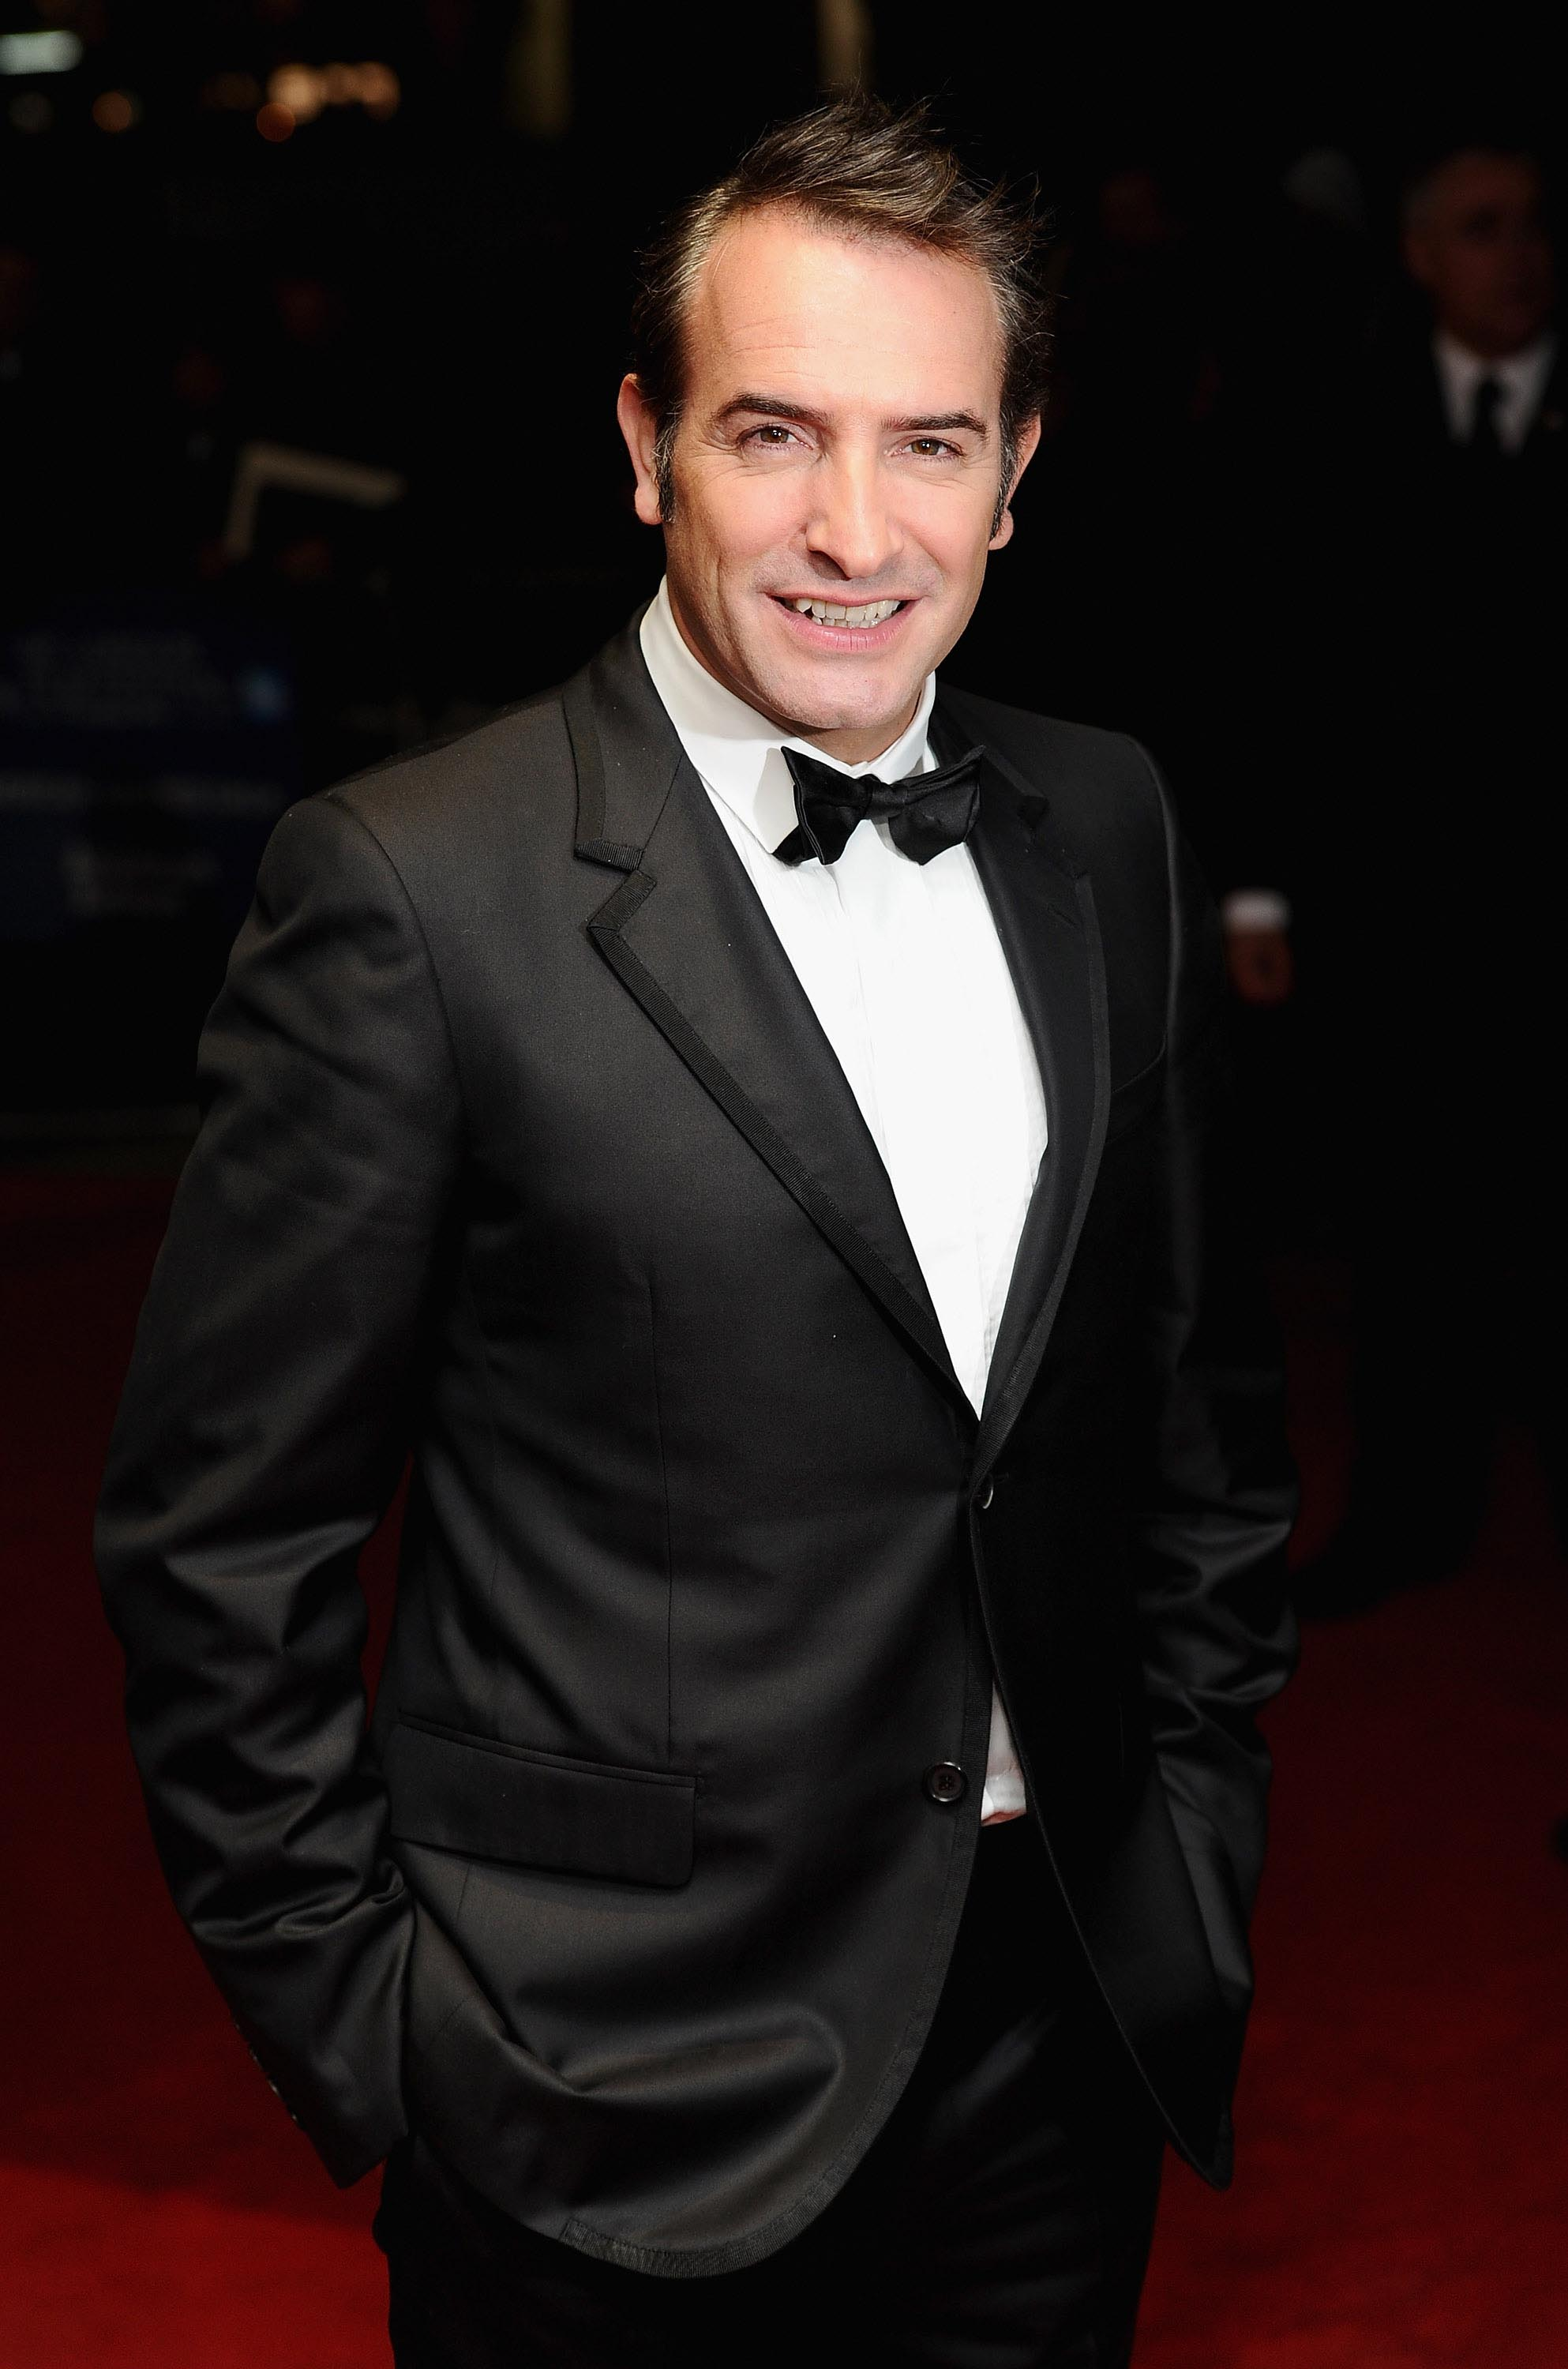 Jean dujardin in talks for martin scorsese film vulture for Film jean dujardin